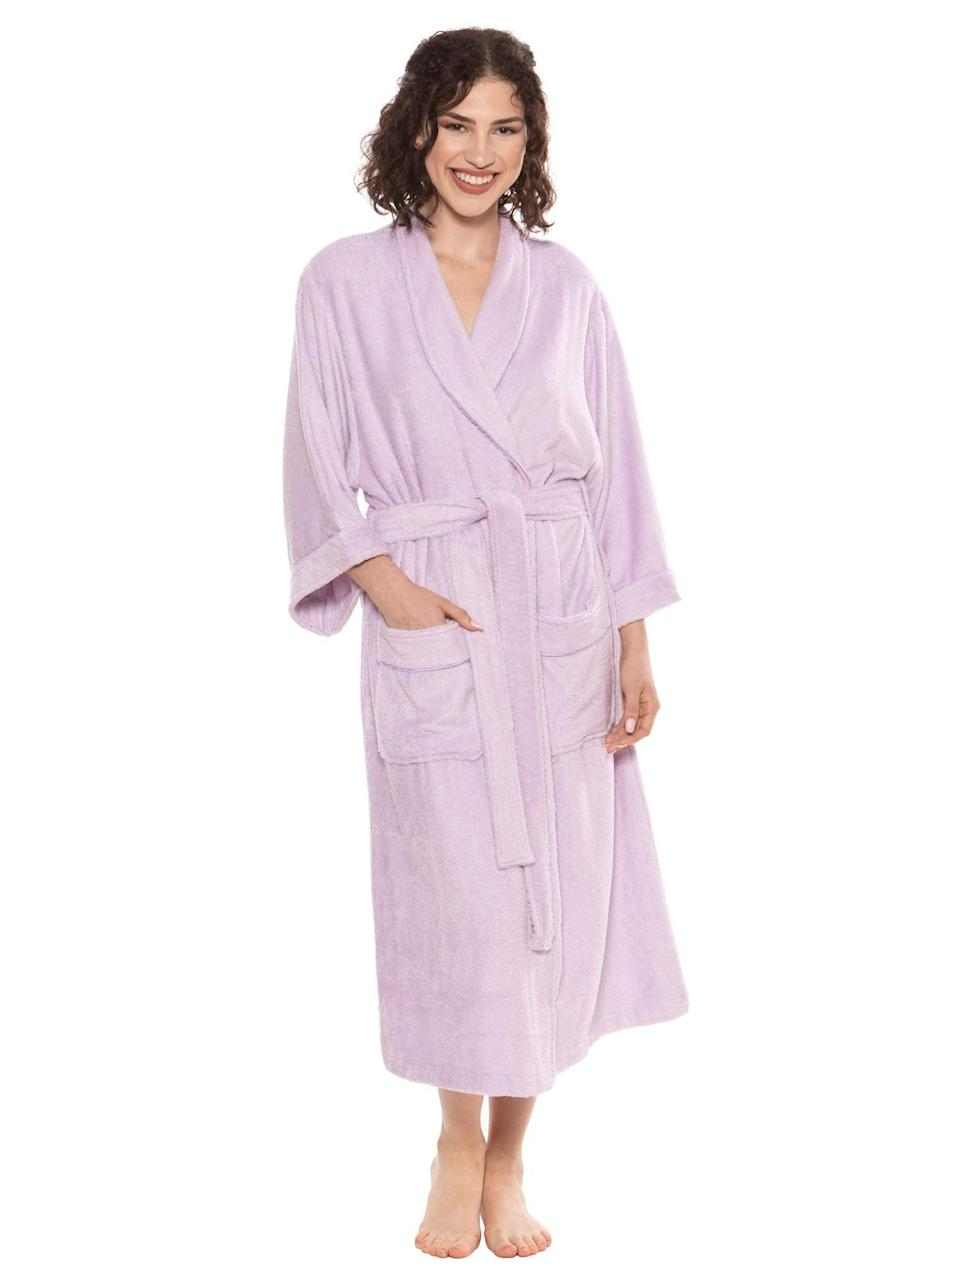 "<h3><a href=""https://amzn.to/2Q1oqZR"" rel=""nofollow noopener"" target=""_blank"" data-ylk=""slk:Luxury Bamboo-Cotton Bathrobe"" class=""link rapid-noclick-resp"">Luxury Bamboo-Cotton Bathrobe</a></h3> <br>Yes, you <em>can</em> get your hands on a luxe-looking and feeling bamboo-cotton blend robe for under $50 — and this top-rated Amazon-style in a calming lavender hue proves it. <br><br>One cozied up customer praised: ""This is a beautiful, spa-quality terry robe. I have been searching for a while for a large comfortable terry robe to throw on right after a shower-no need for a towel. But they are VERY pricey. I was browsing one day and came across this robe. At the price I thought it couldn't be that good, but what the heck, so I gave it a try. This has to be one of the nicest terry robes I have ever owned and it cost less than a quarter of what I have spent. It is soft and absorbent. It is warm and snuggly and heavyweight. This is an excellent buy."" <br><br><br><br><strong>TexereSilk</strong> Luxury Bamboo Viscose Robe, $, available at <a href=""https://amzn.to/2Q1oqZR"" rel=""nofollow noopener"" target=""_blank"" data-ylk=""slk:Amazon"" class=""link rapid-noclick-resp"">Amazon</a><br><br><br><br><br>"